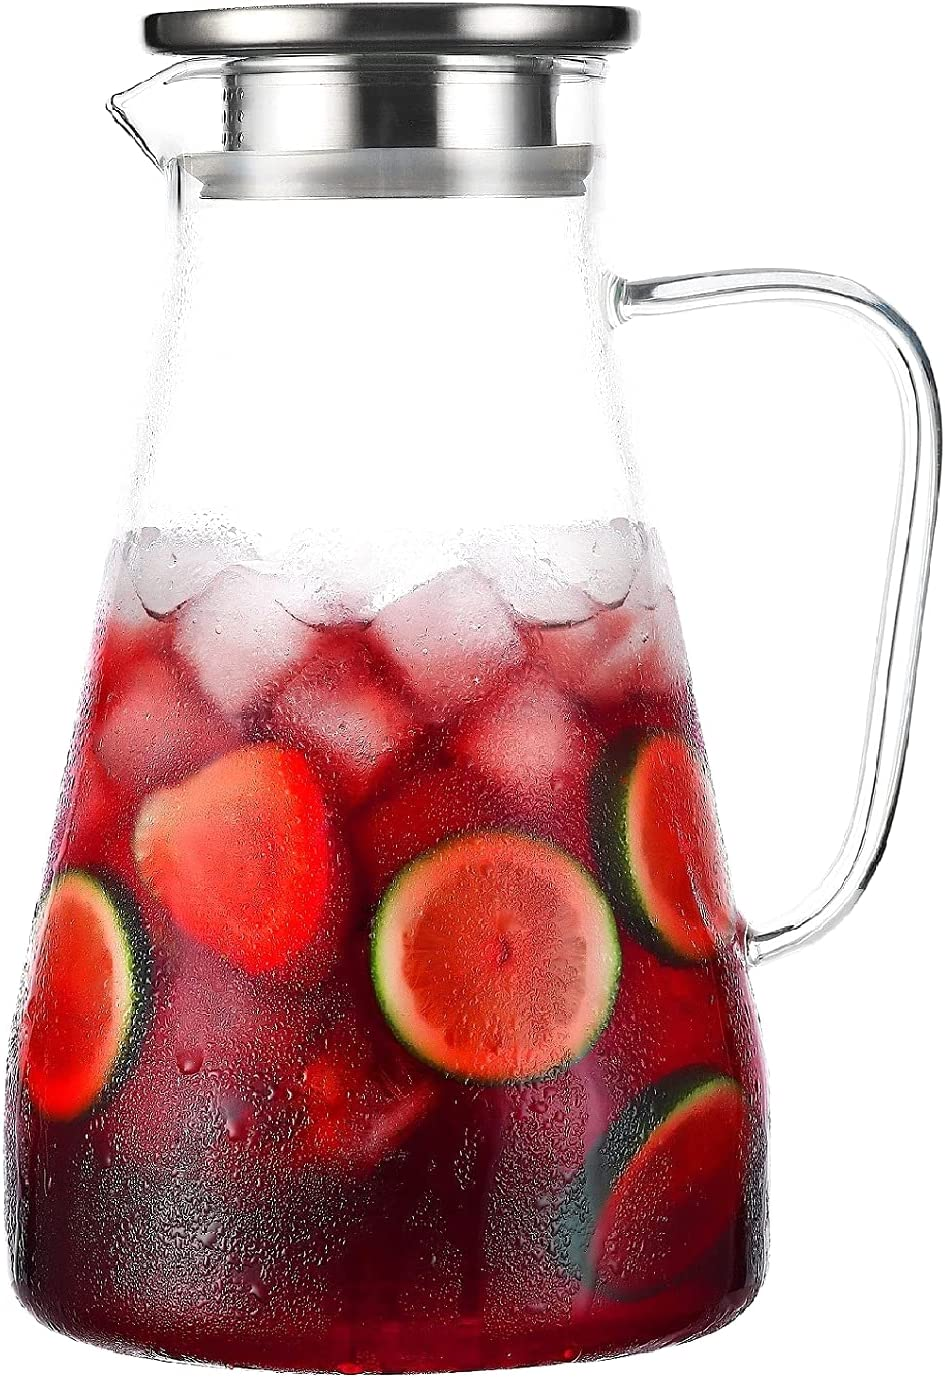 Tbgllmy 2 Liter 68 Ounces Glass Pitcher With Lid, Hot&Cold Water Pitcher With Handle, for Homemade Beverage, Juice, Iced Tea and Milk